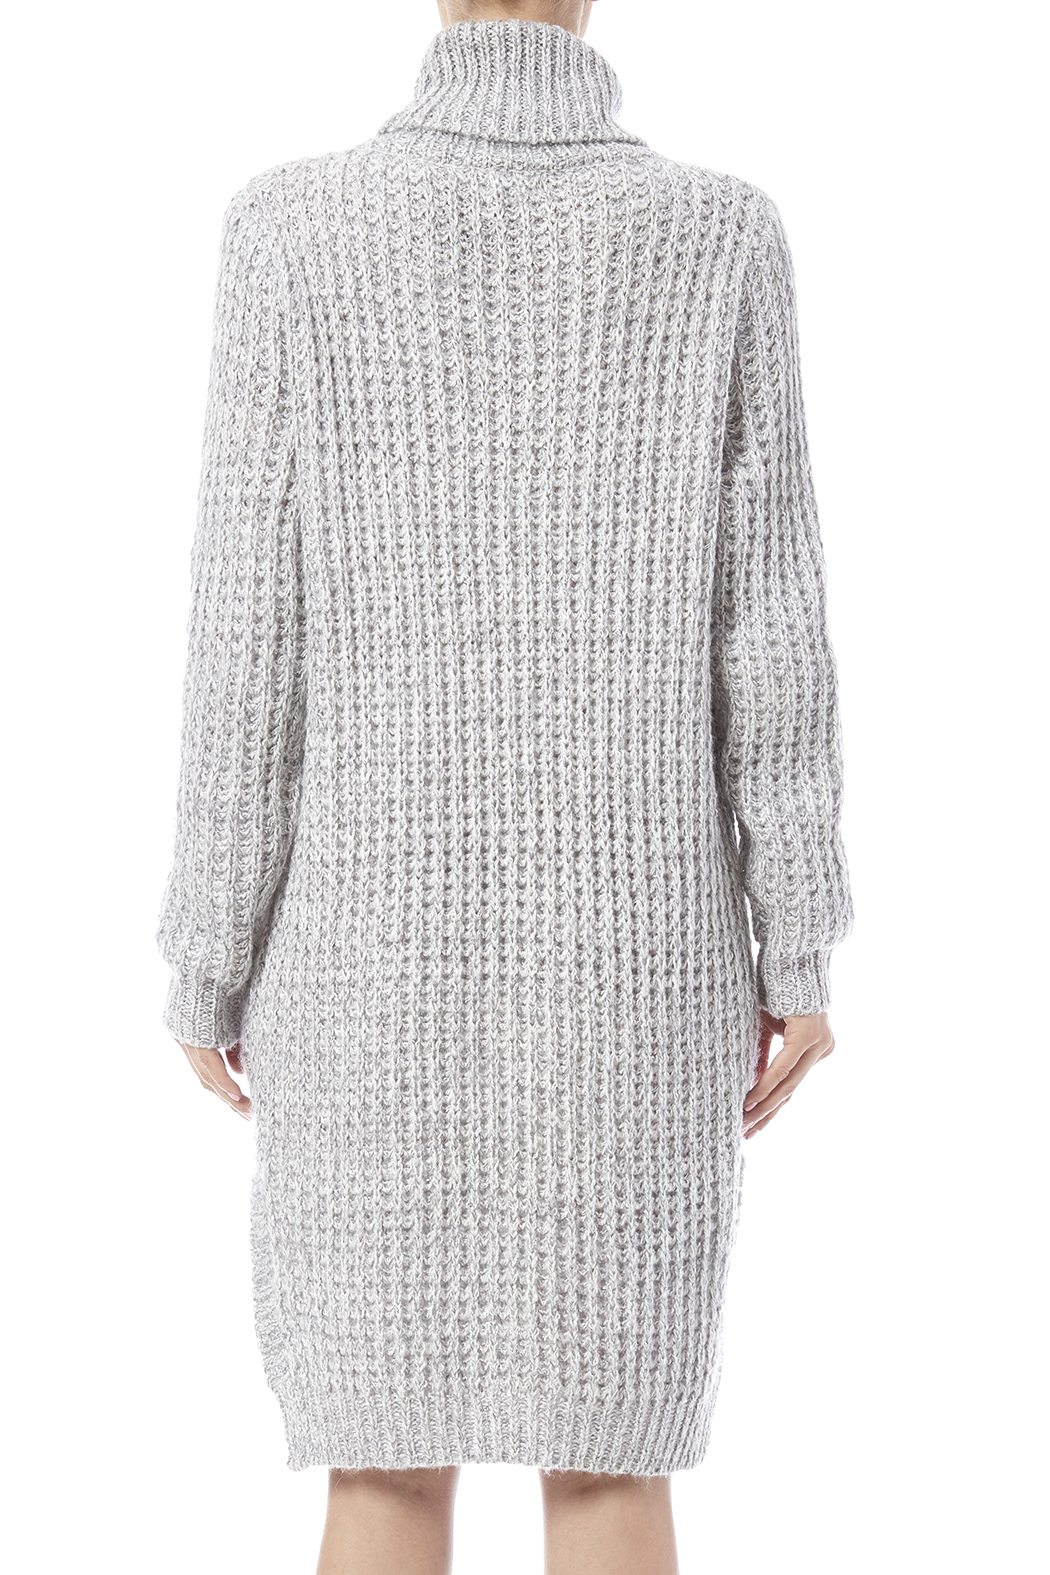 549d0ec1997 Gracia Chunky Knit Dress from New York City by Jupe — Shoptiques